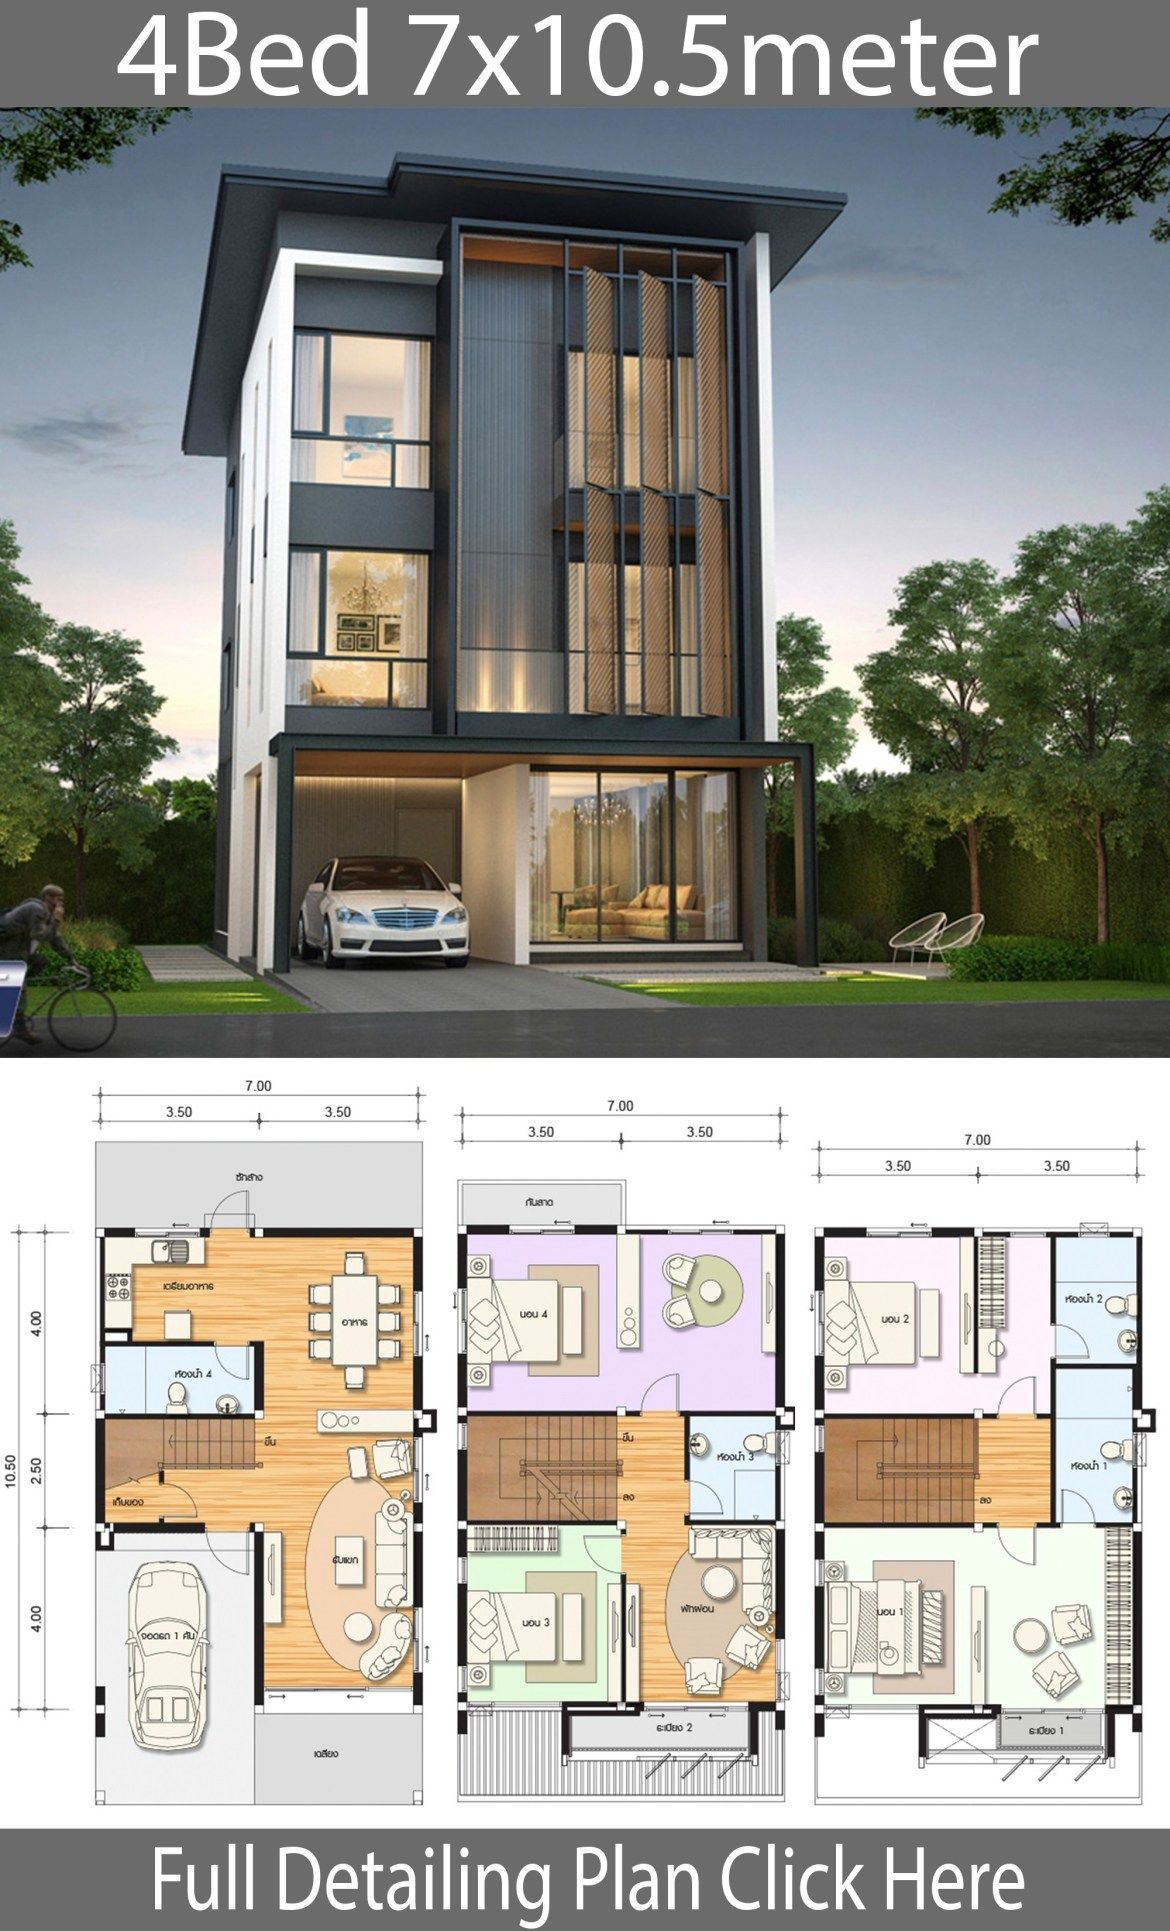 House Design Plan 7x10 5m With 4 Bedrooms Home Ideas In 2020 Narrow House Plans House Designs Exterior Duplex House Design